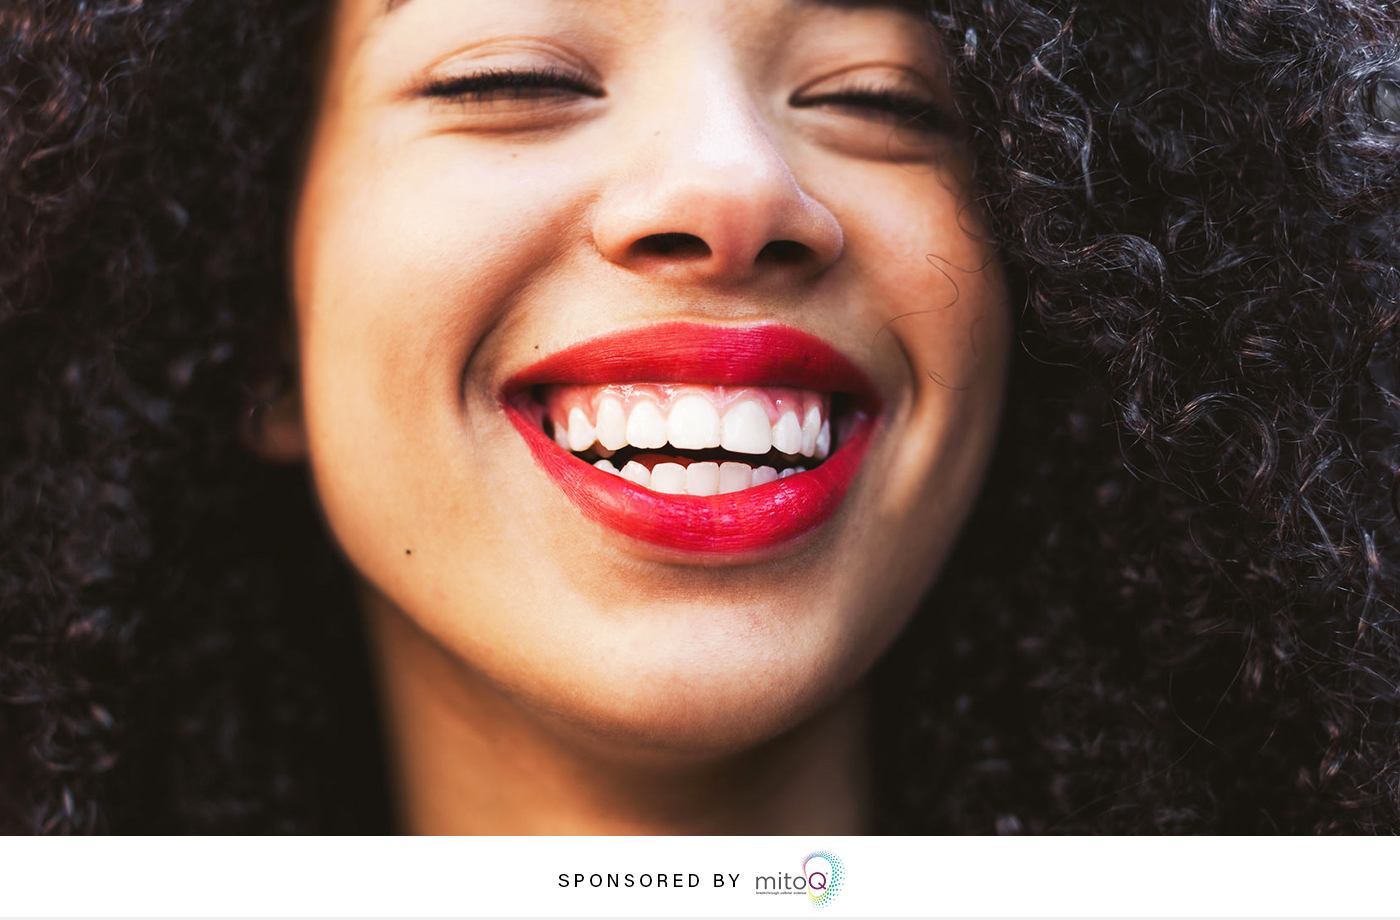 Thumbnail for Don't have an ingestible beauty routine? Here's why you might want to start one